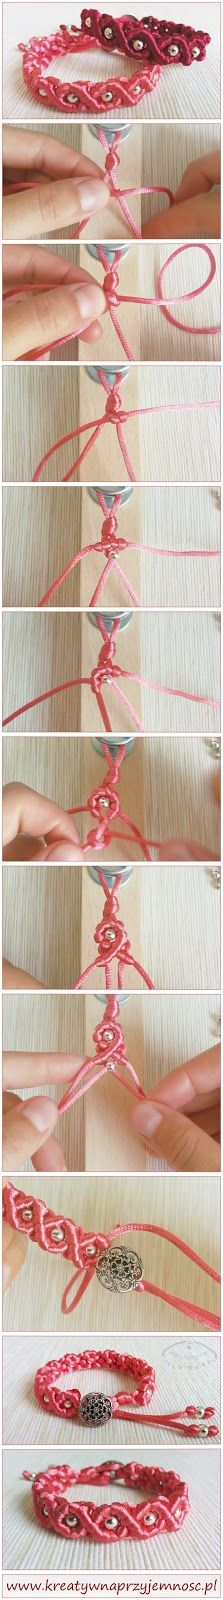 Macrame bracelet with satin cord. Video tutorial.